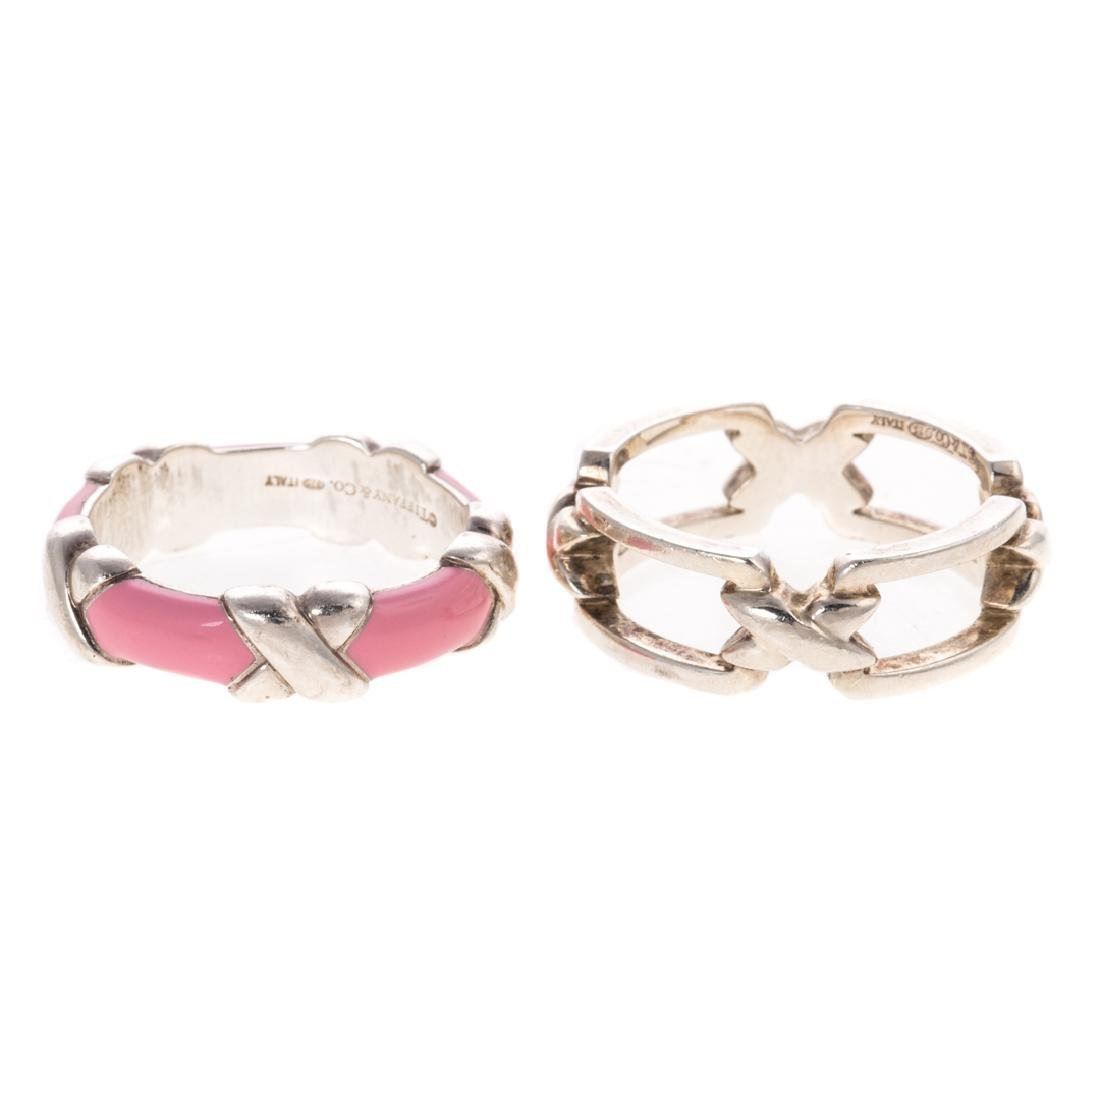 A Pair of Silver Tiffany & Co Stackable Rings